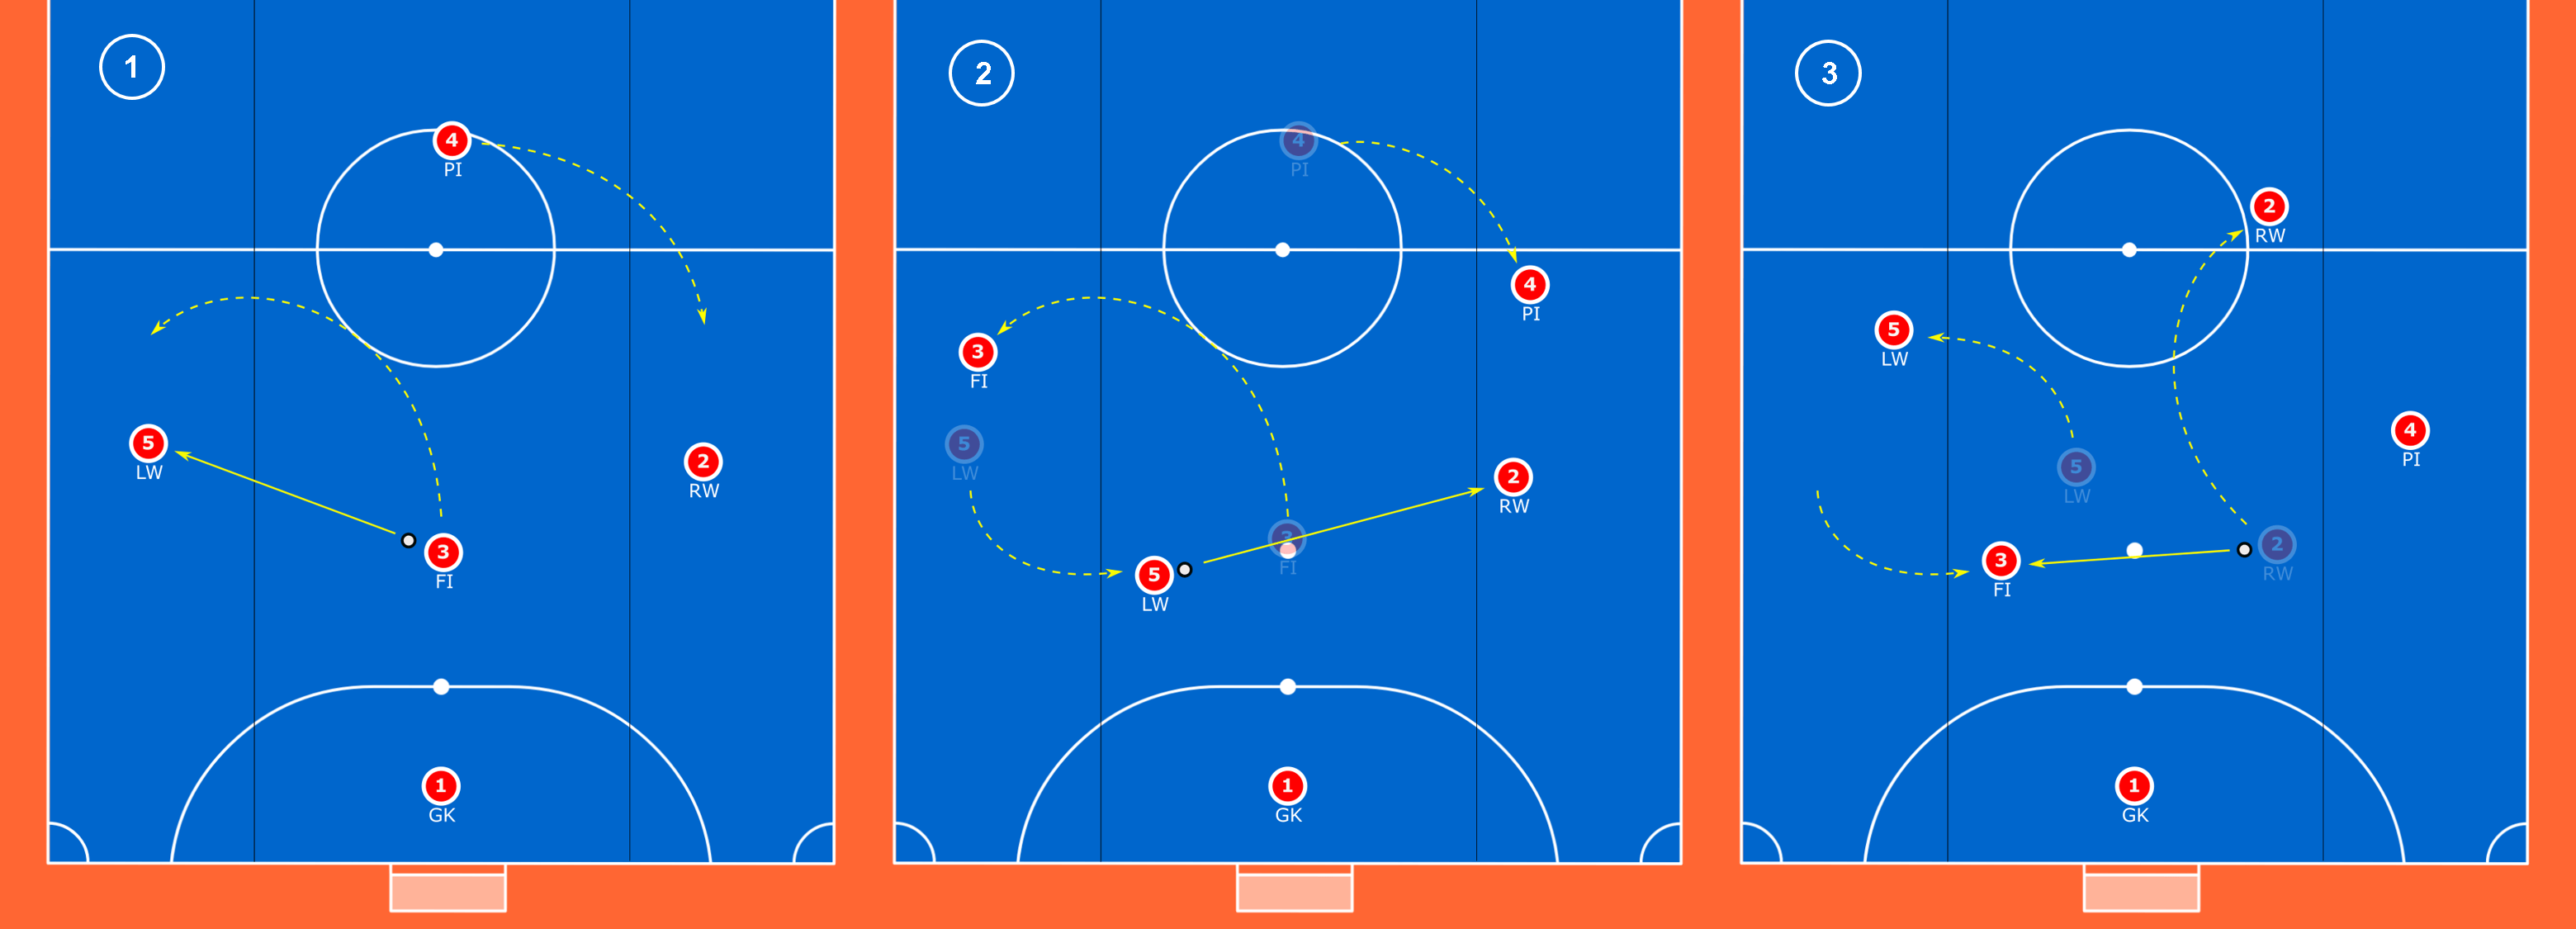 Using futsal principles to coach rotations in football tactics analysis